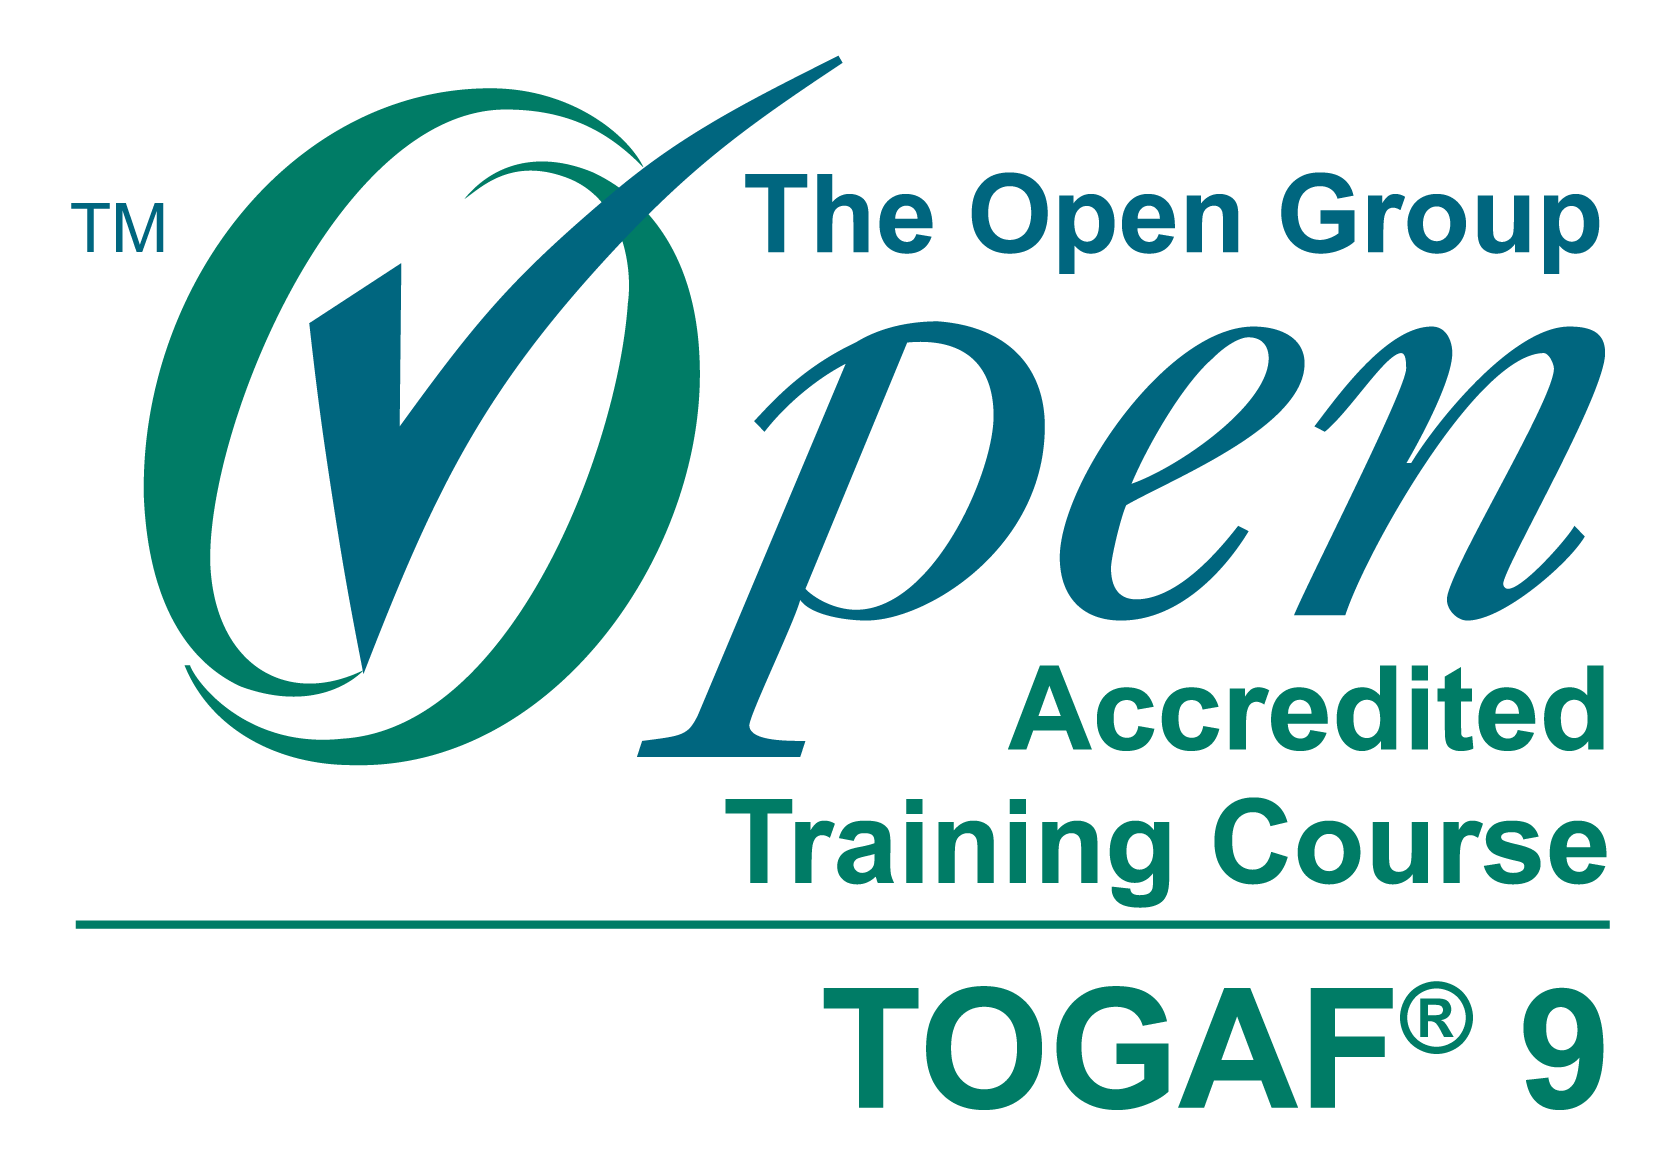 Inspirational pictures of togaf certification business cards and ea principals from togaf certification image source opengroup xflitez Choice Image